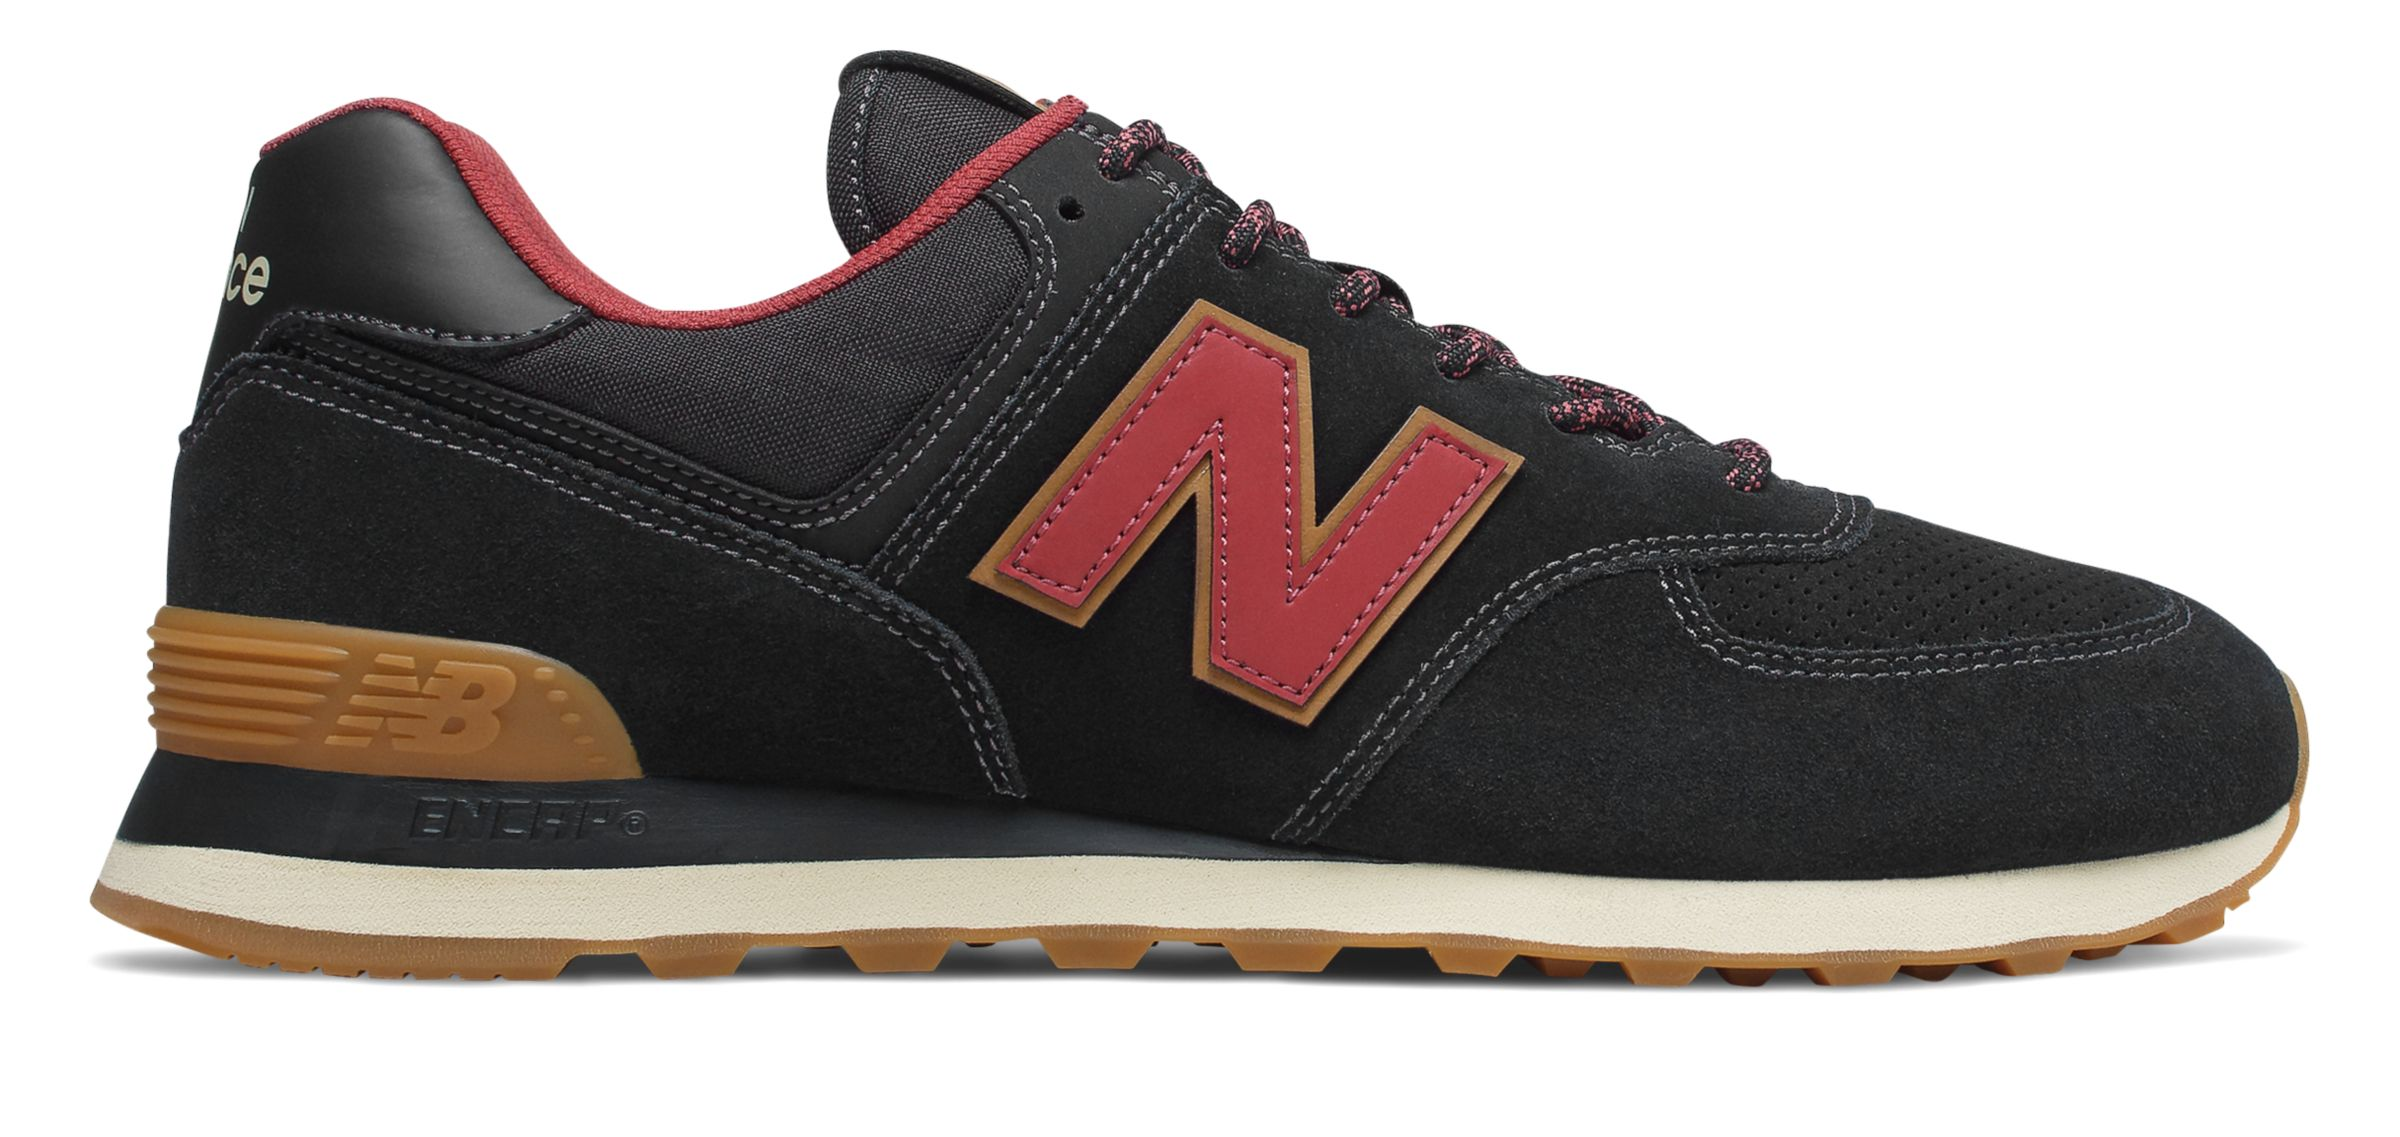 New Balance Men s 574 Shoes Black with Red   eBay 9e55c8d720f